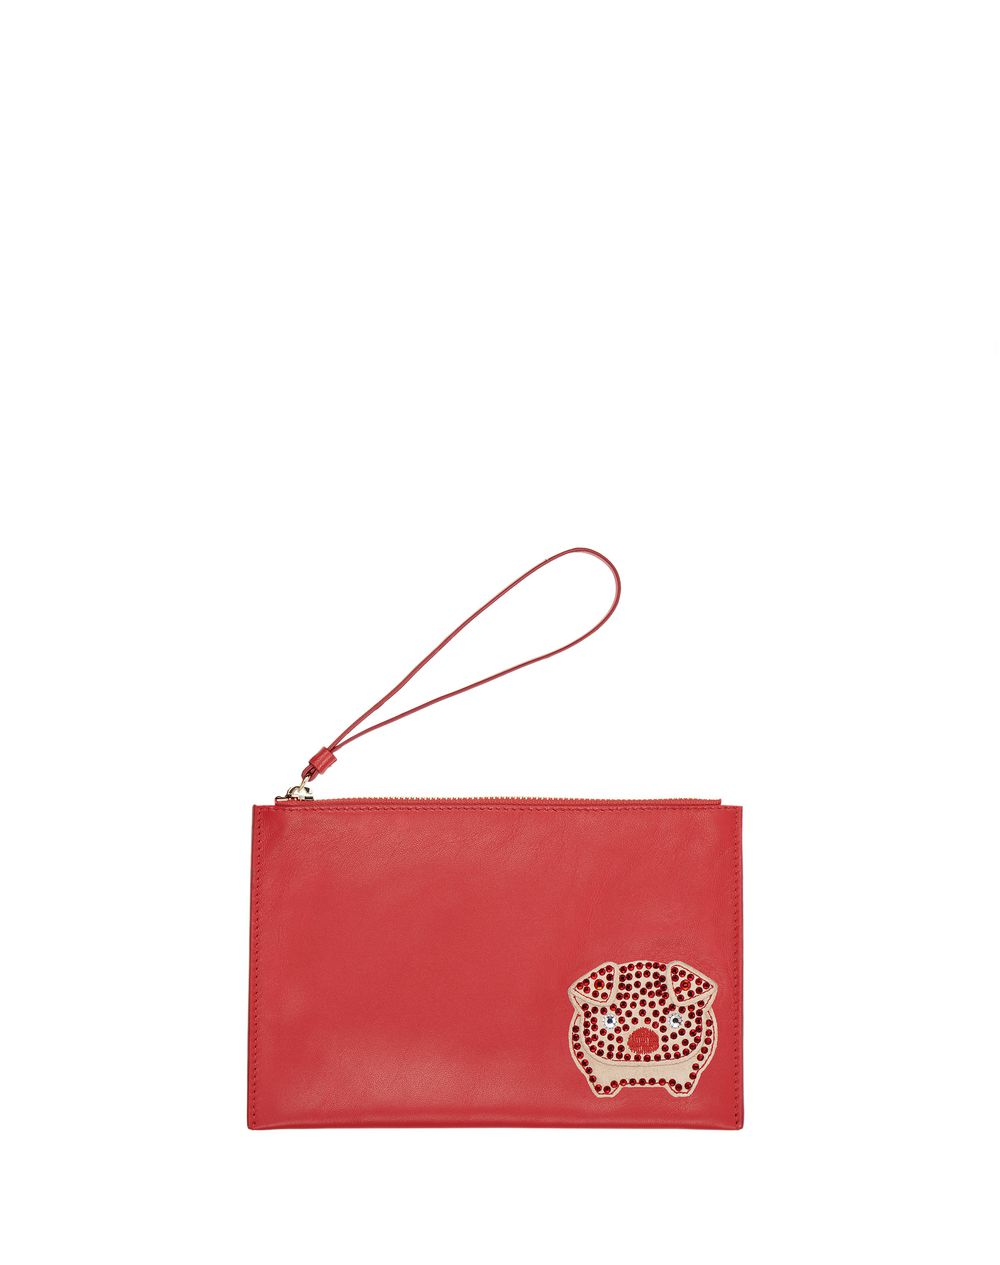 MEDIUM POPPY EMBROIDERED CLUTCH - Lanvin